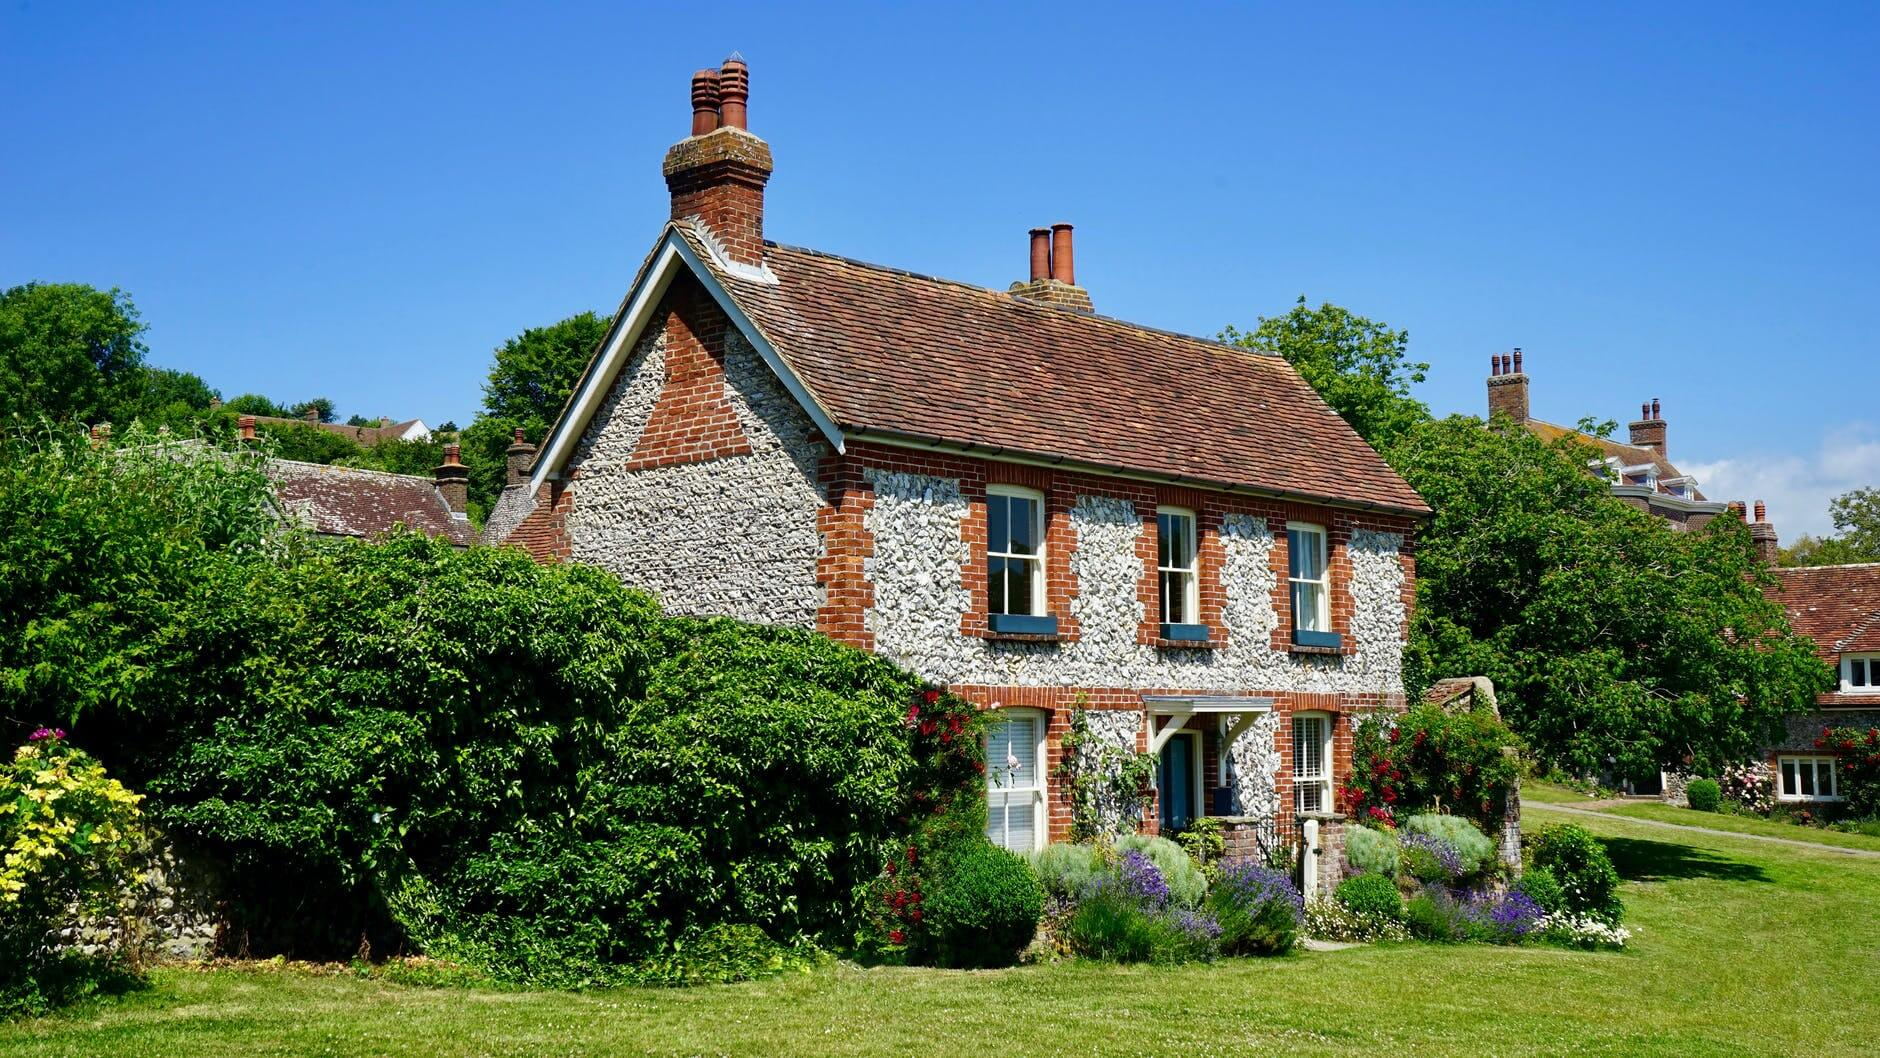 An old house for sale.